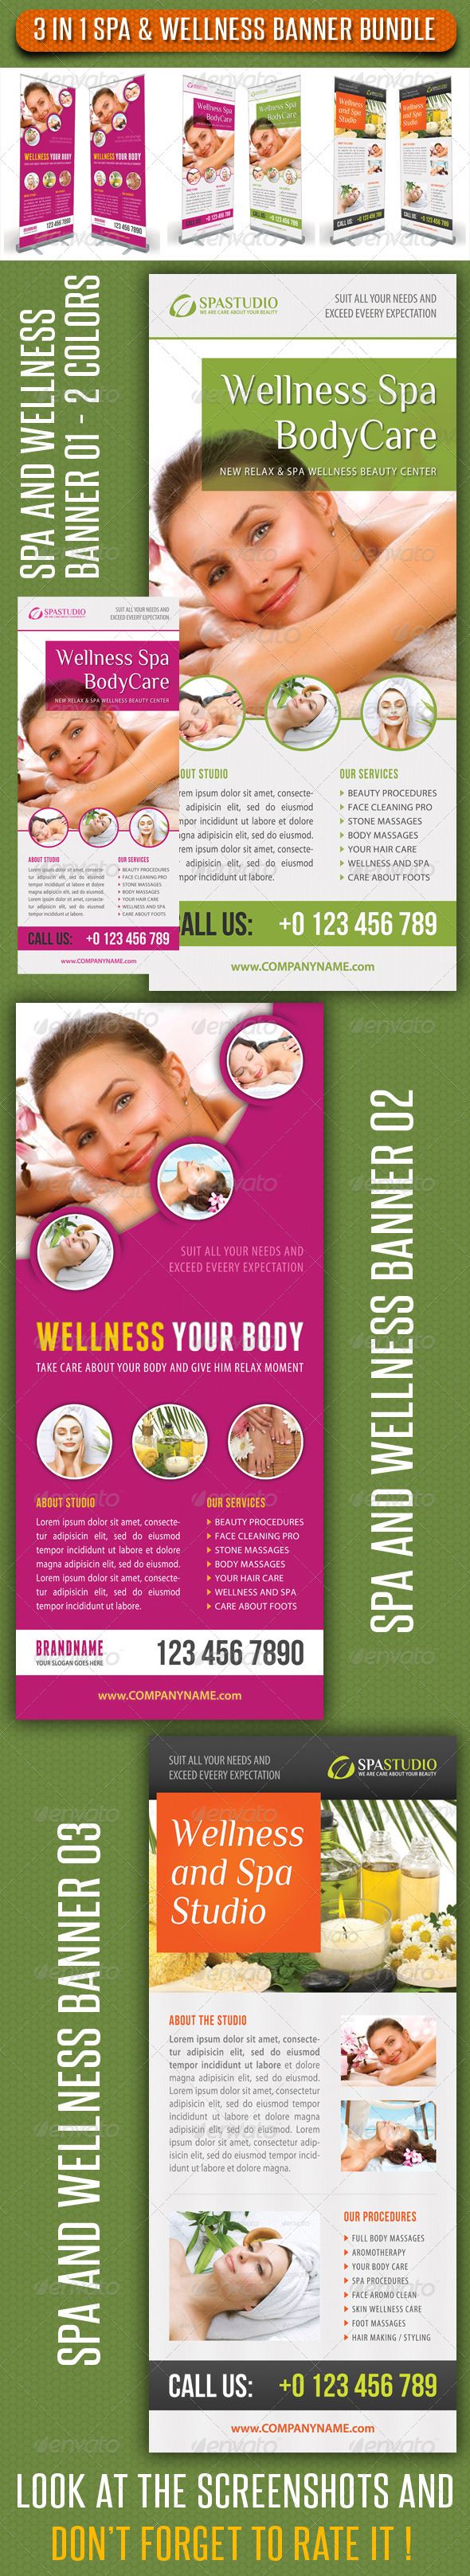 3 in 1 Spa Wellness Banner Bundle 04